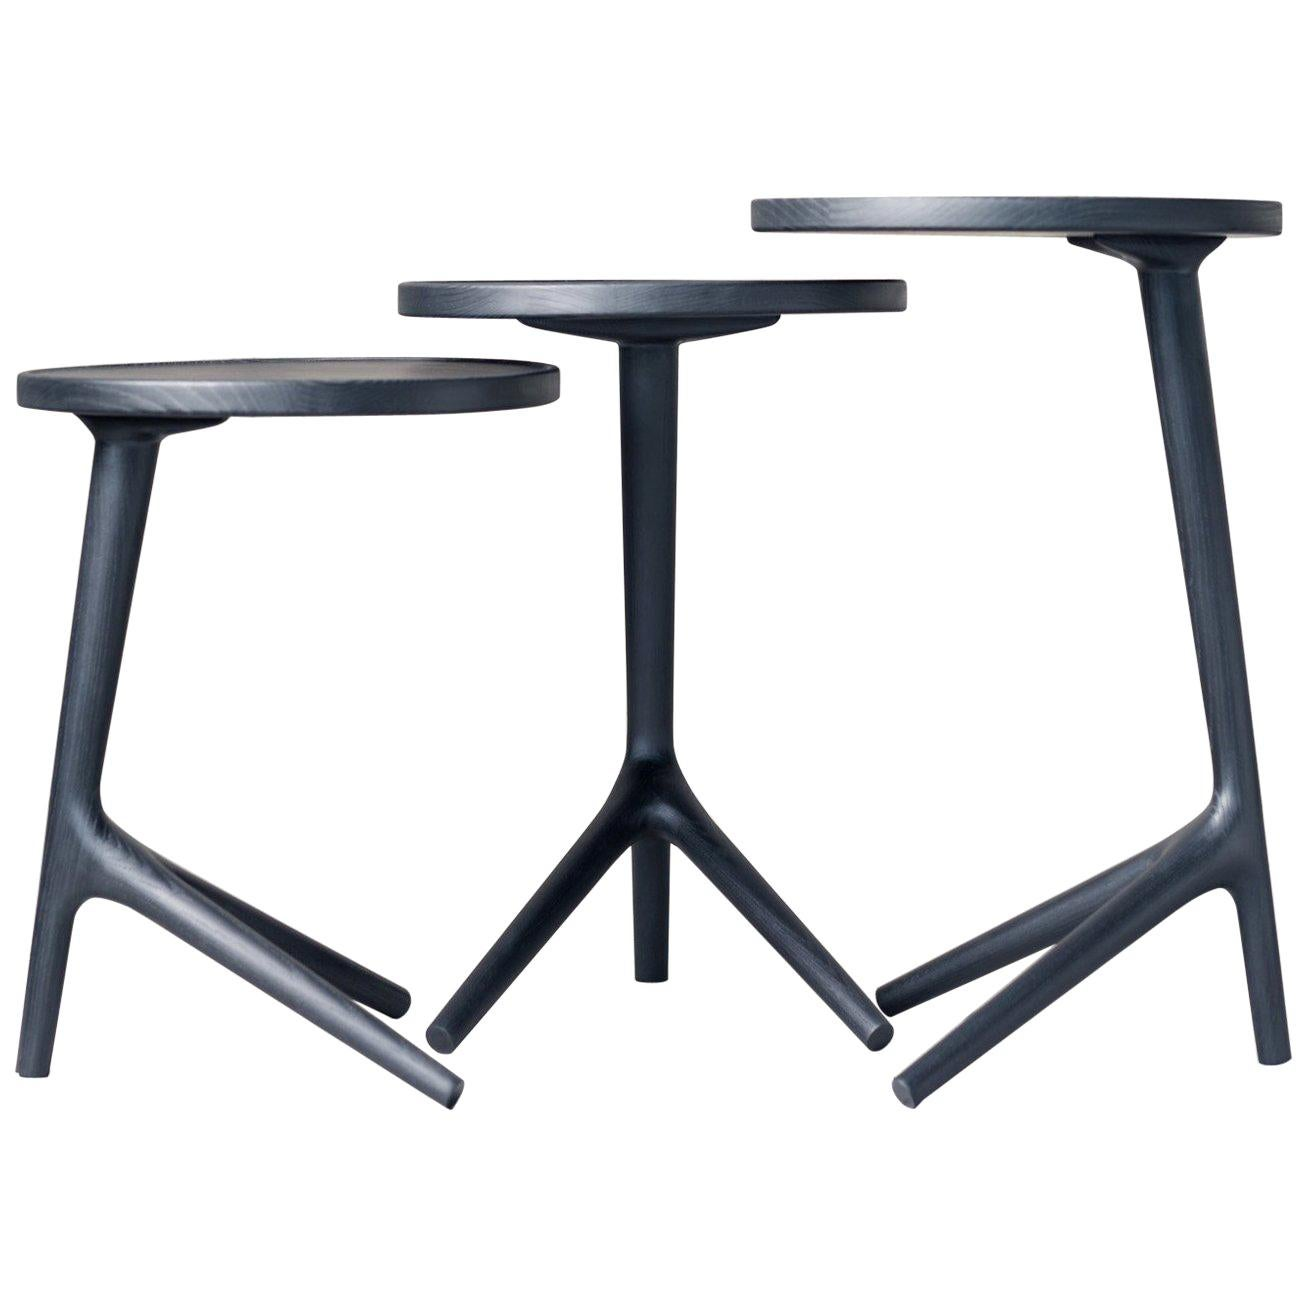 Nesting End Tables in Charcoal Ash handmade by Fernweh Woodworking, Set of Three